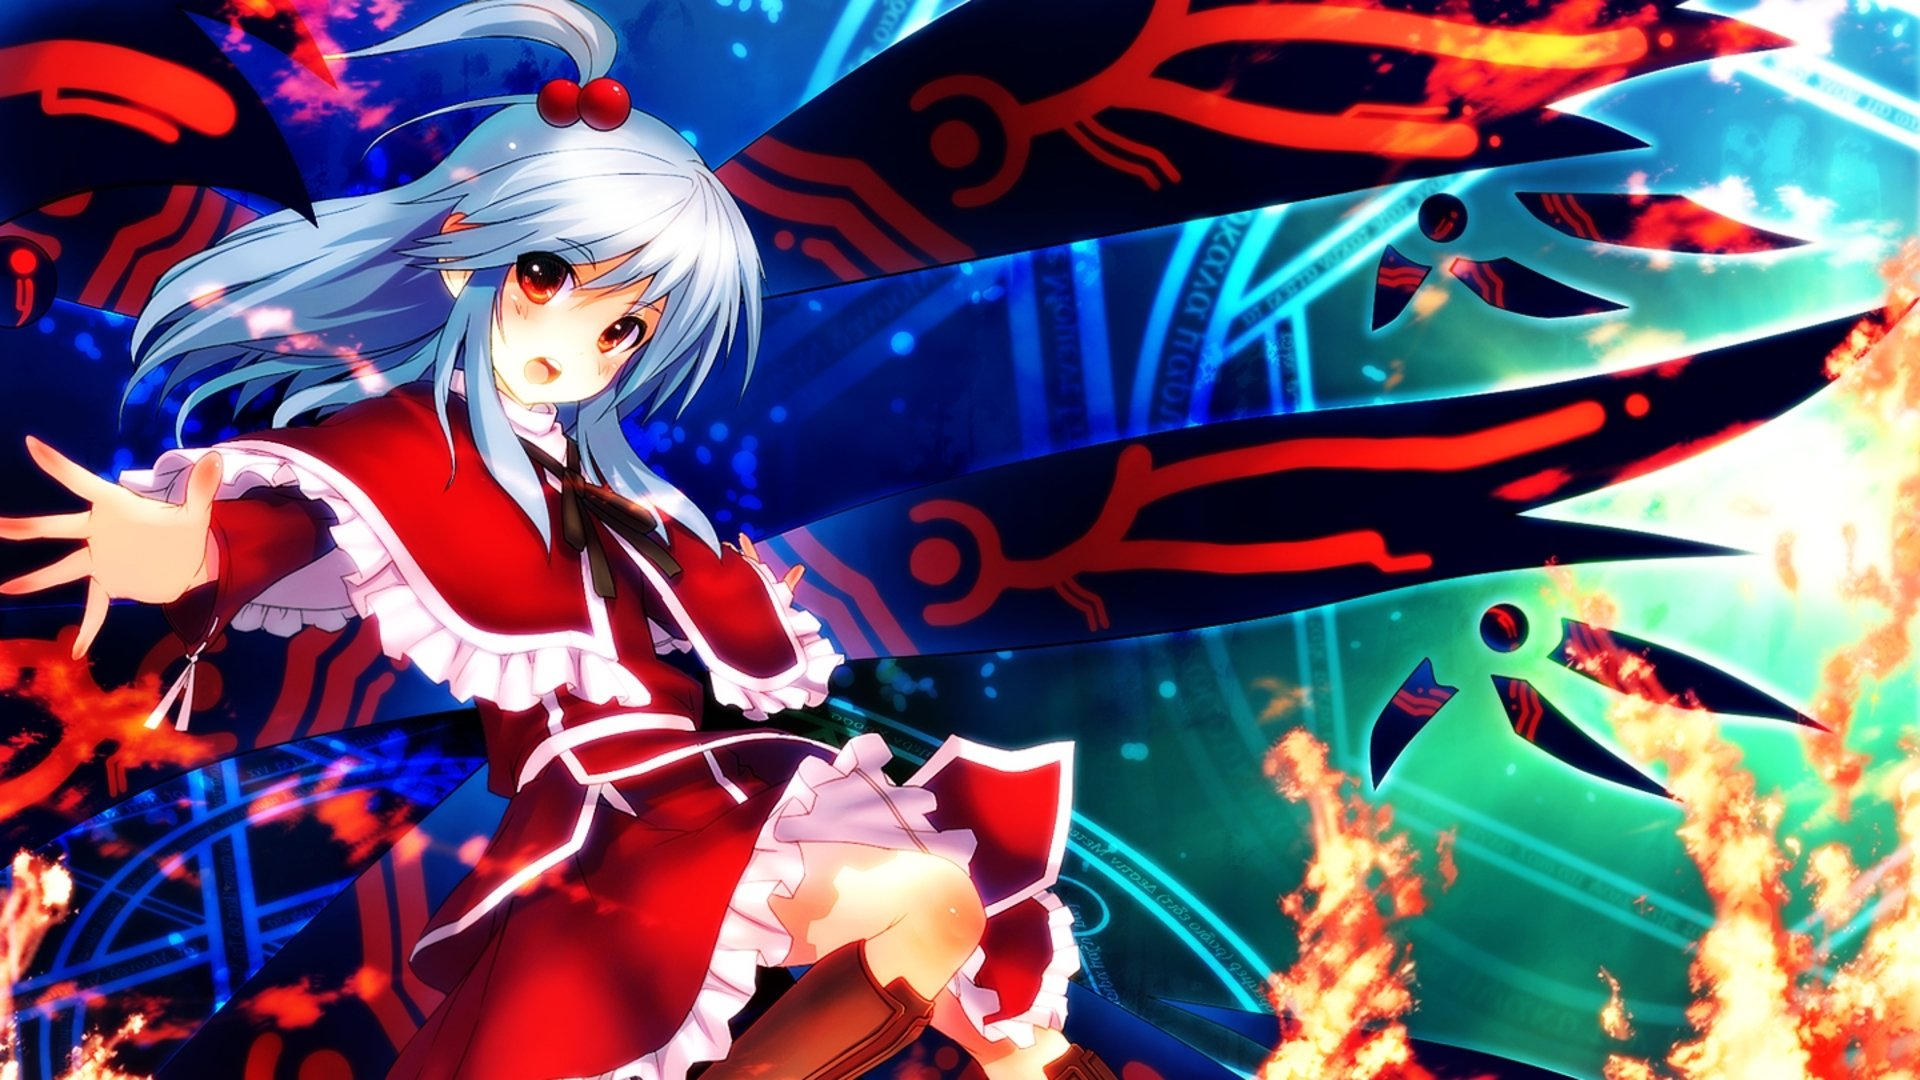 Touhou full hd wallpaper and background image 1920x1080 - Full hd anime wallpaper pack ...